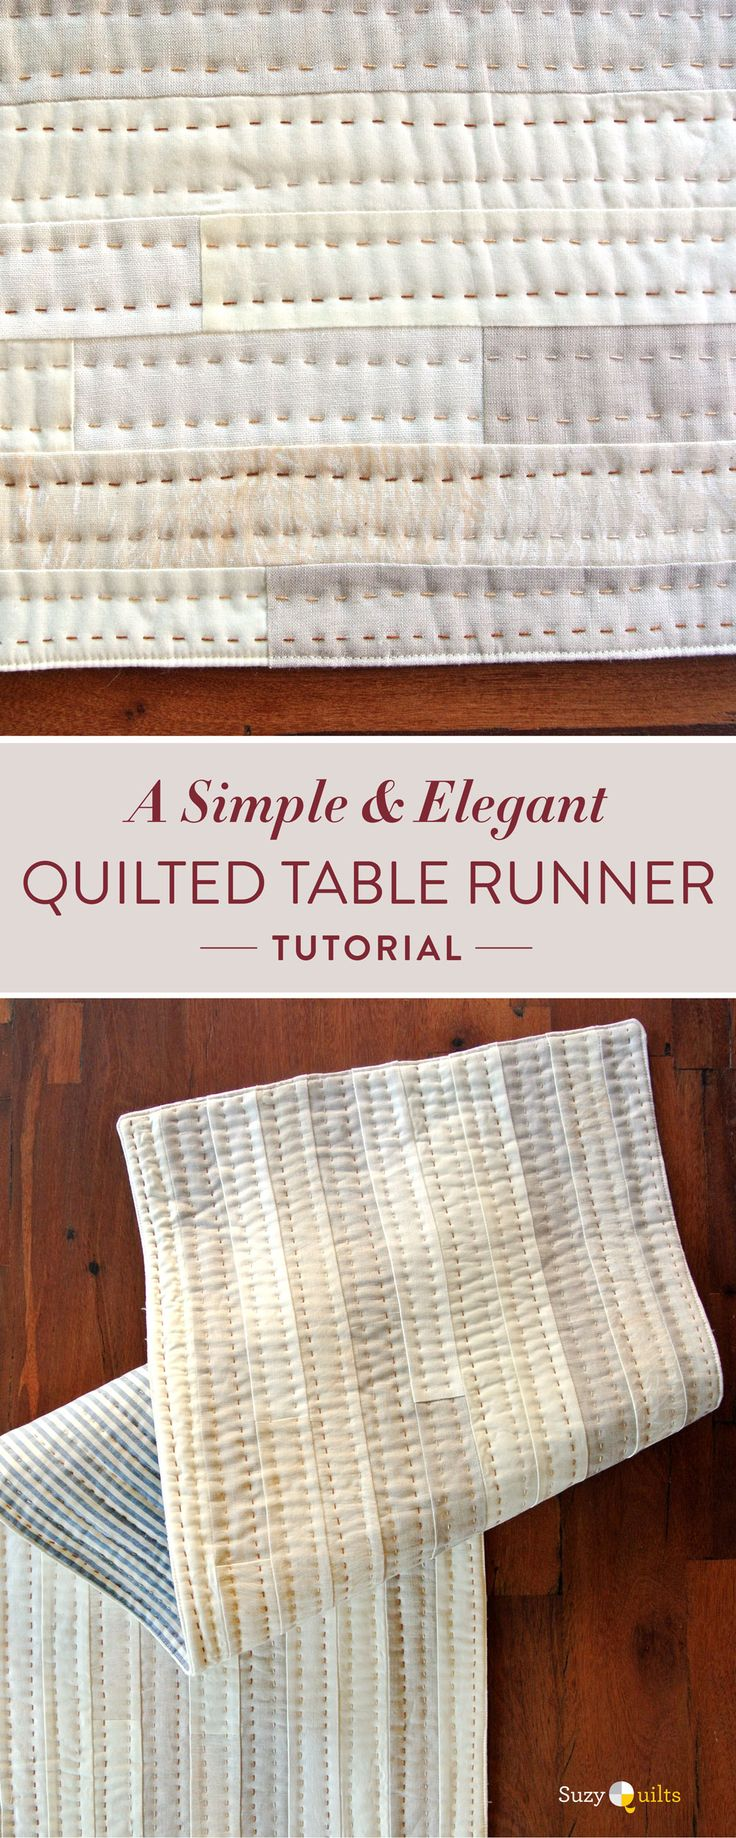 Quilted-Table-Runner-Tutorial